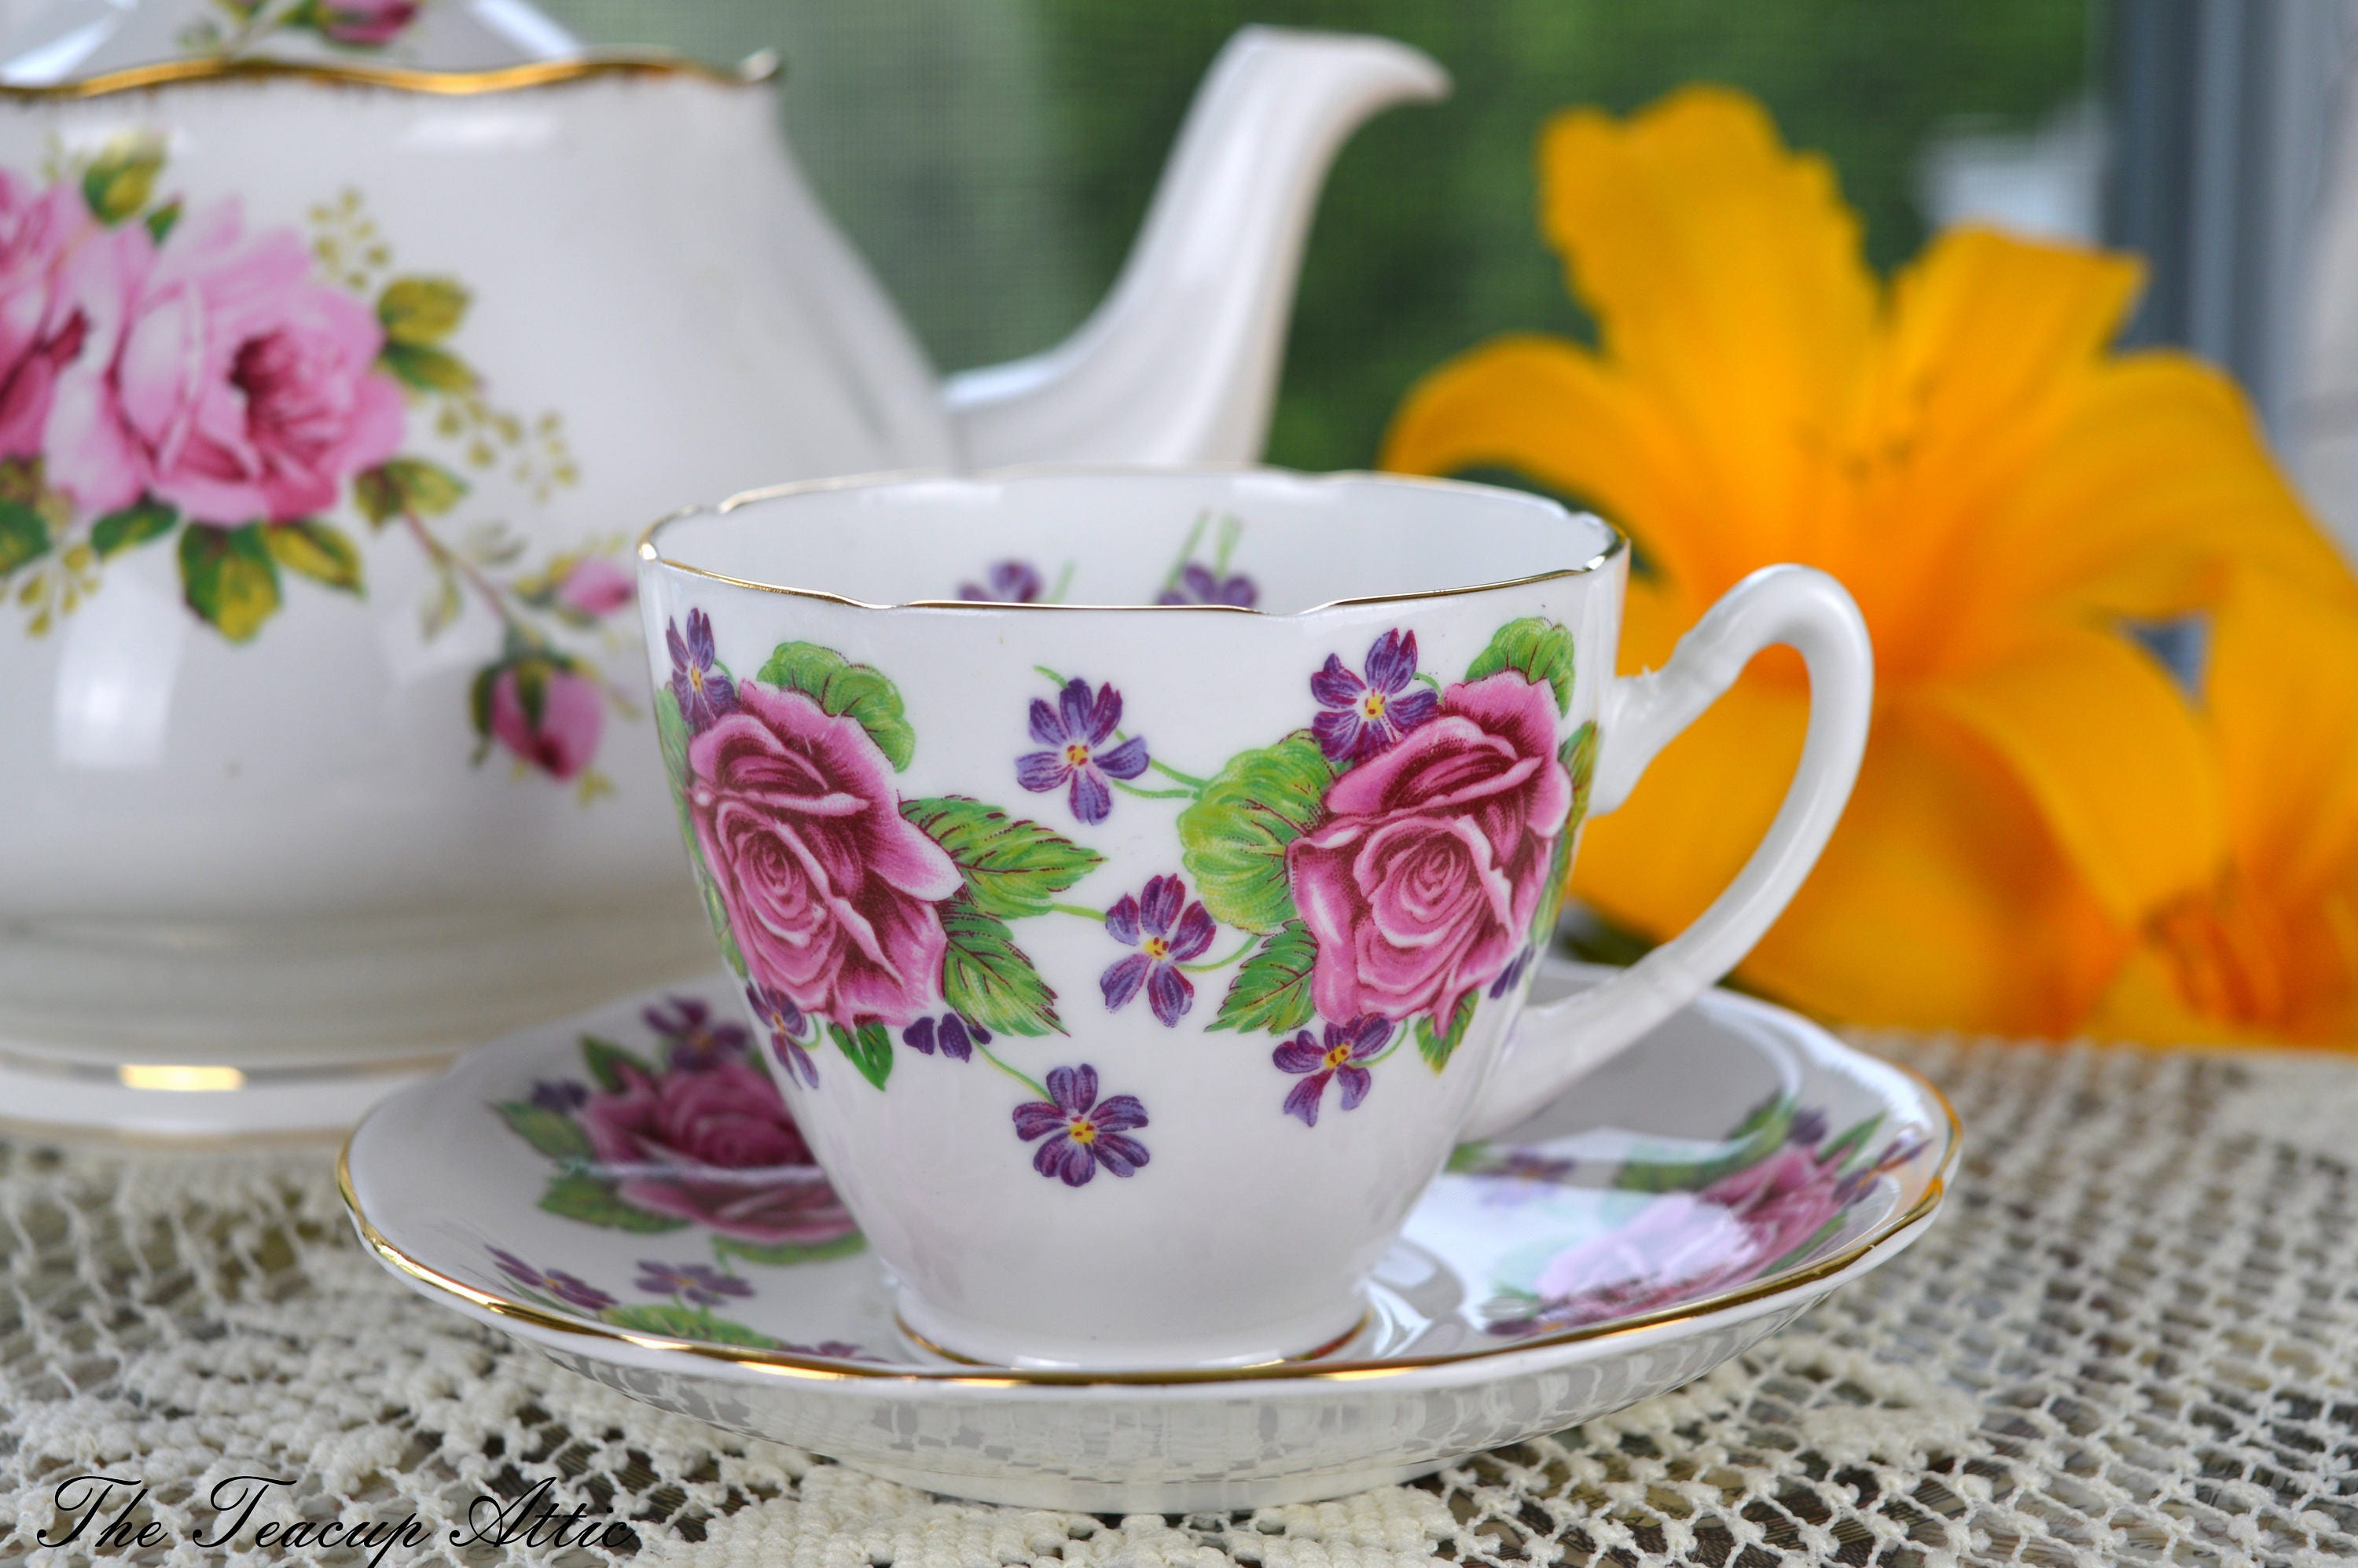 Gladstone Roses and Violets Teacup and Saucer, English Bone China Tea Cup Set, Garden Tea Party, ca. 1946-1961